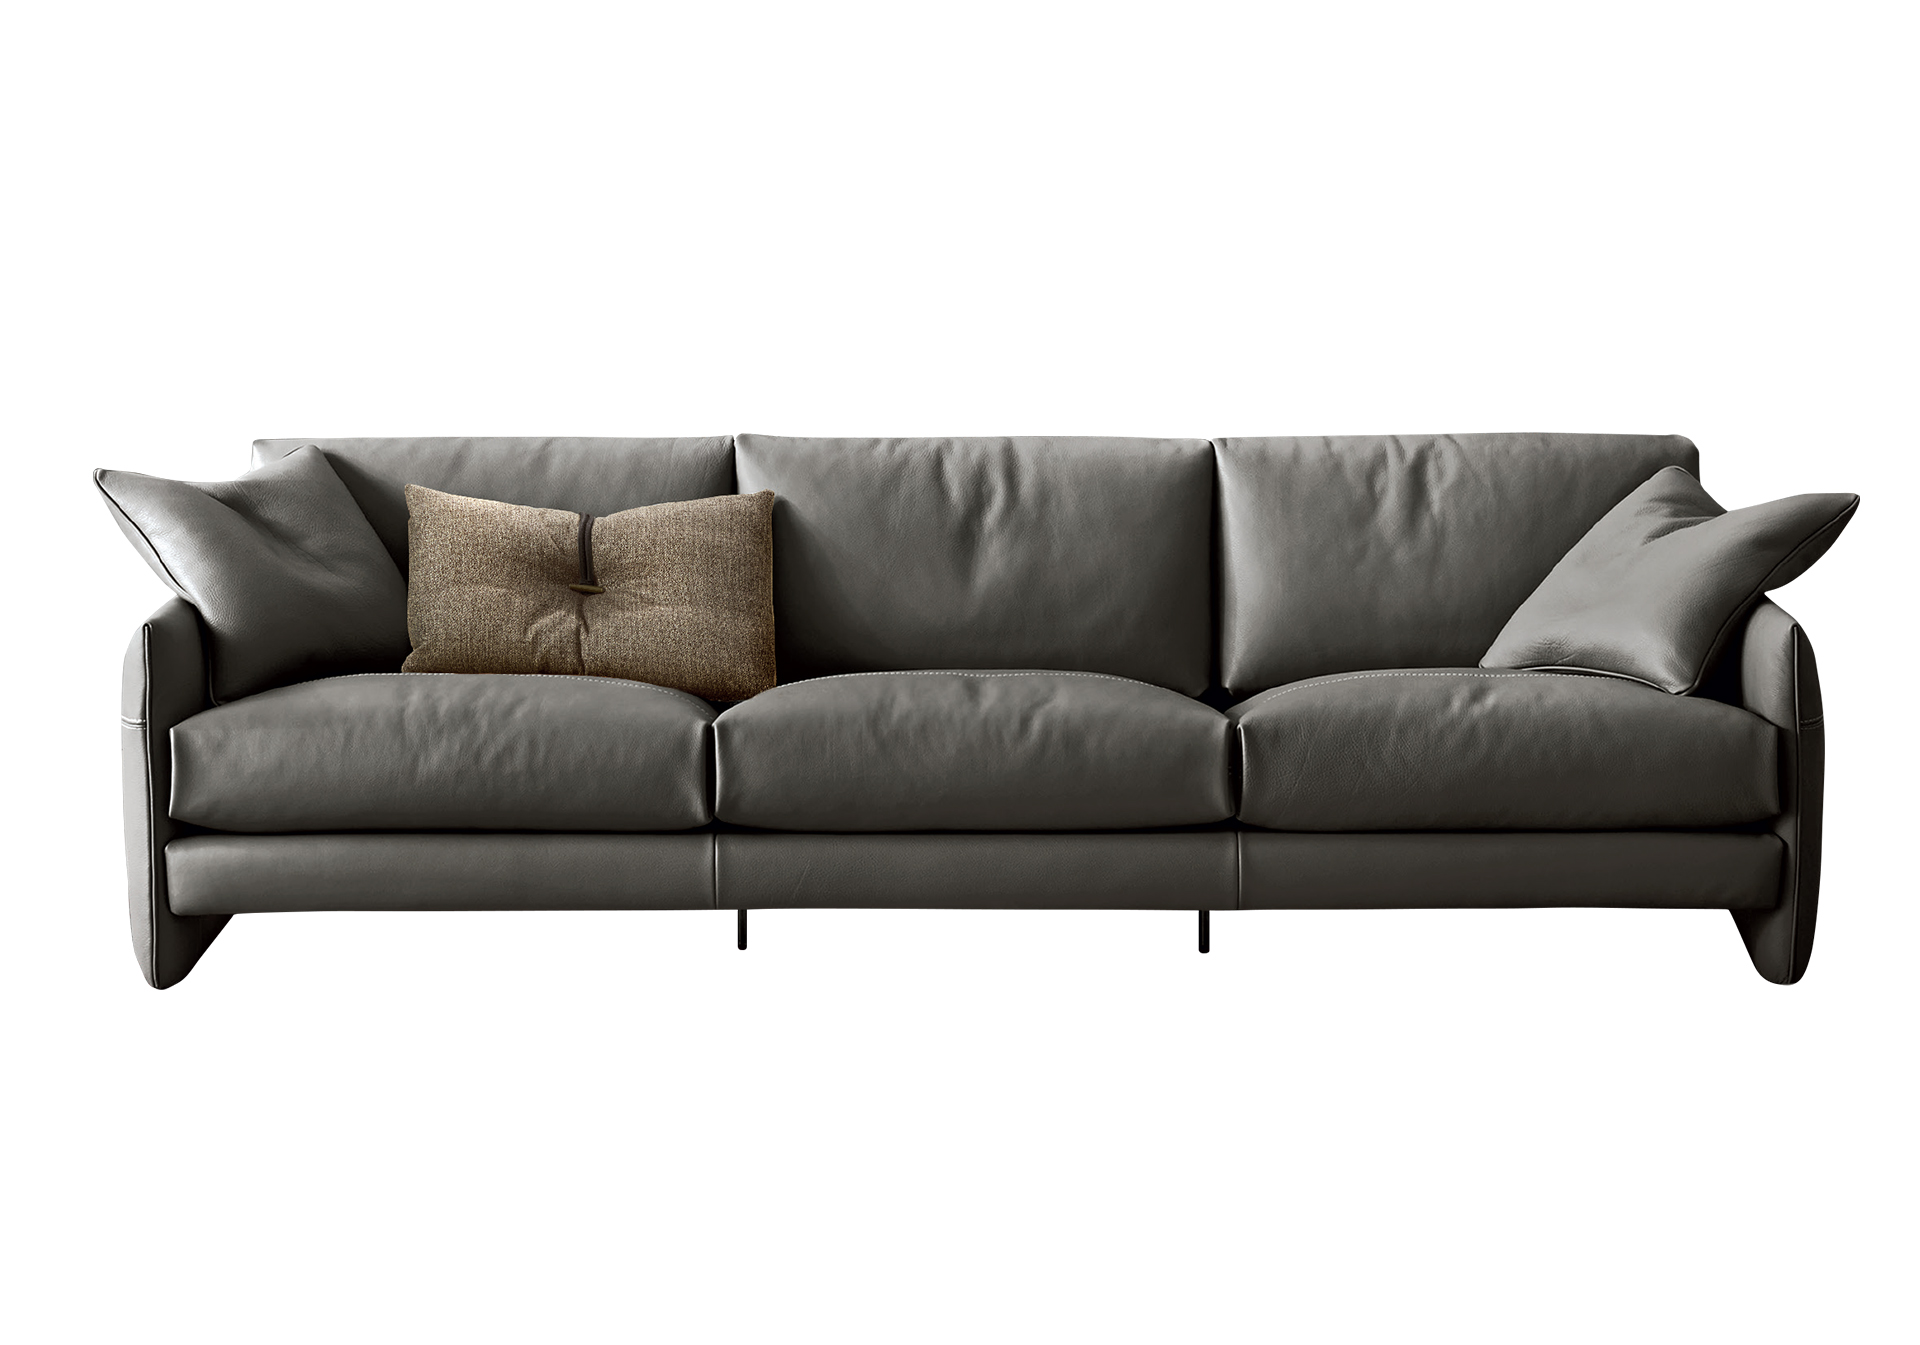 Sofa Bed Arredamento.Gamma Collection Gamma Arredamenti